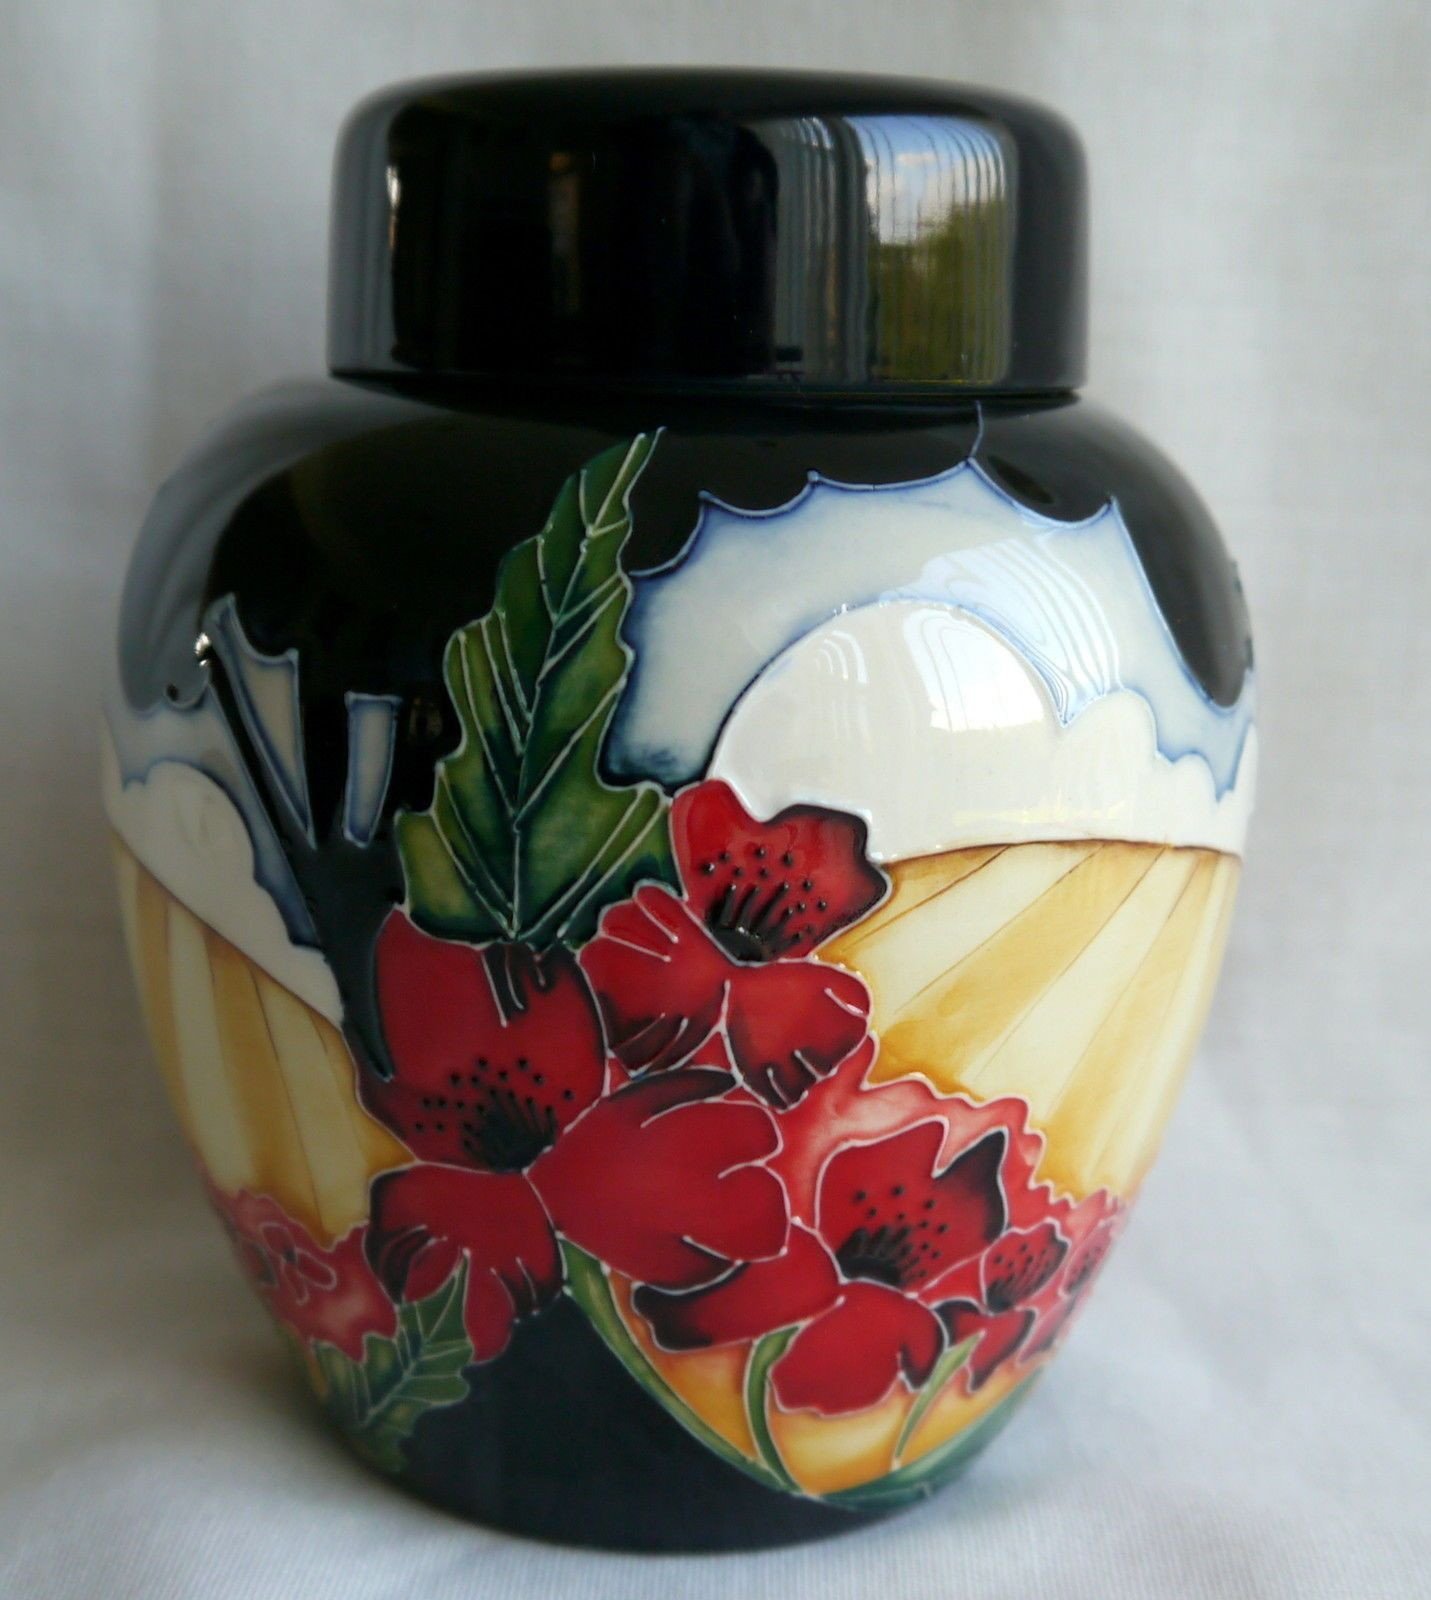 bell jar vase of red ceramic vase best of chinese ginger jar table lamps new vases for red ceramic vase best of chinese ginger jar table lamps new vases chinese vase with lid